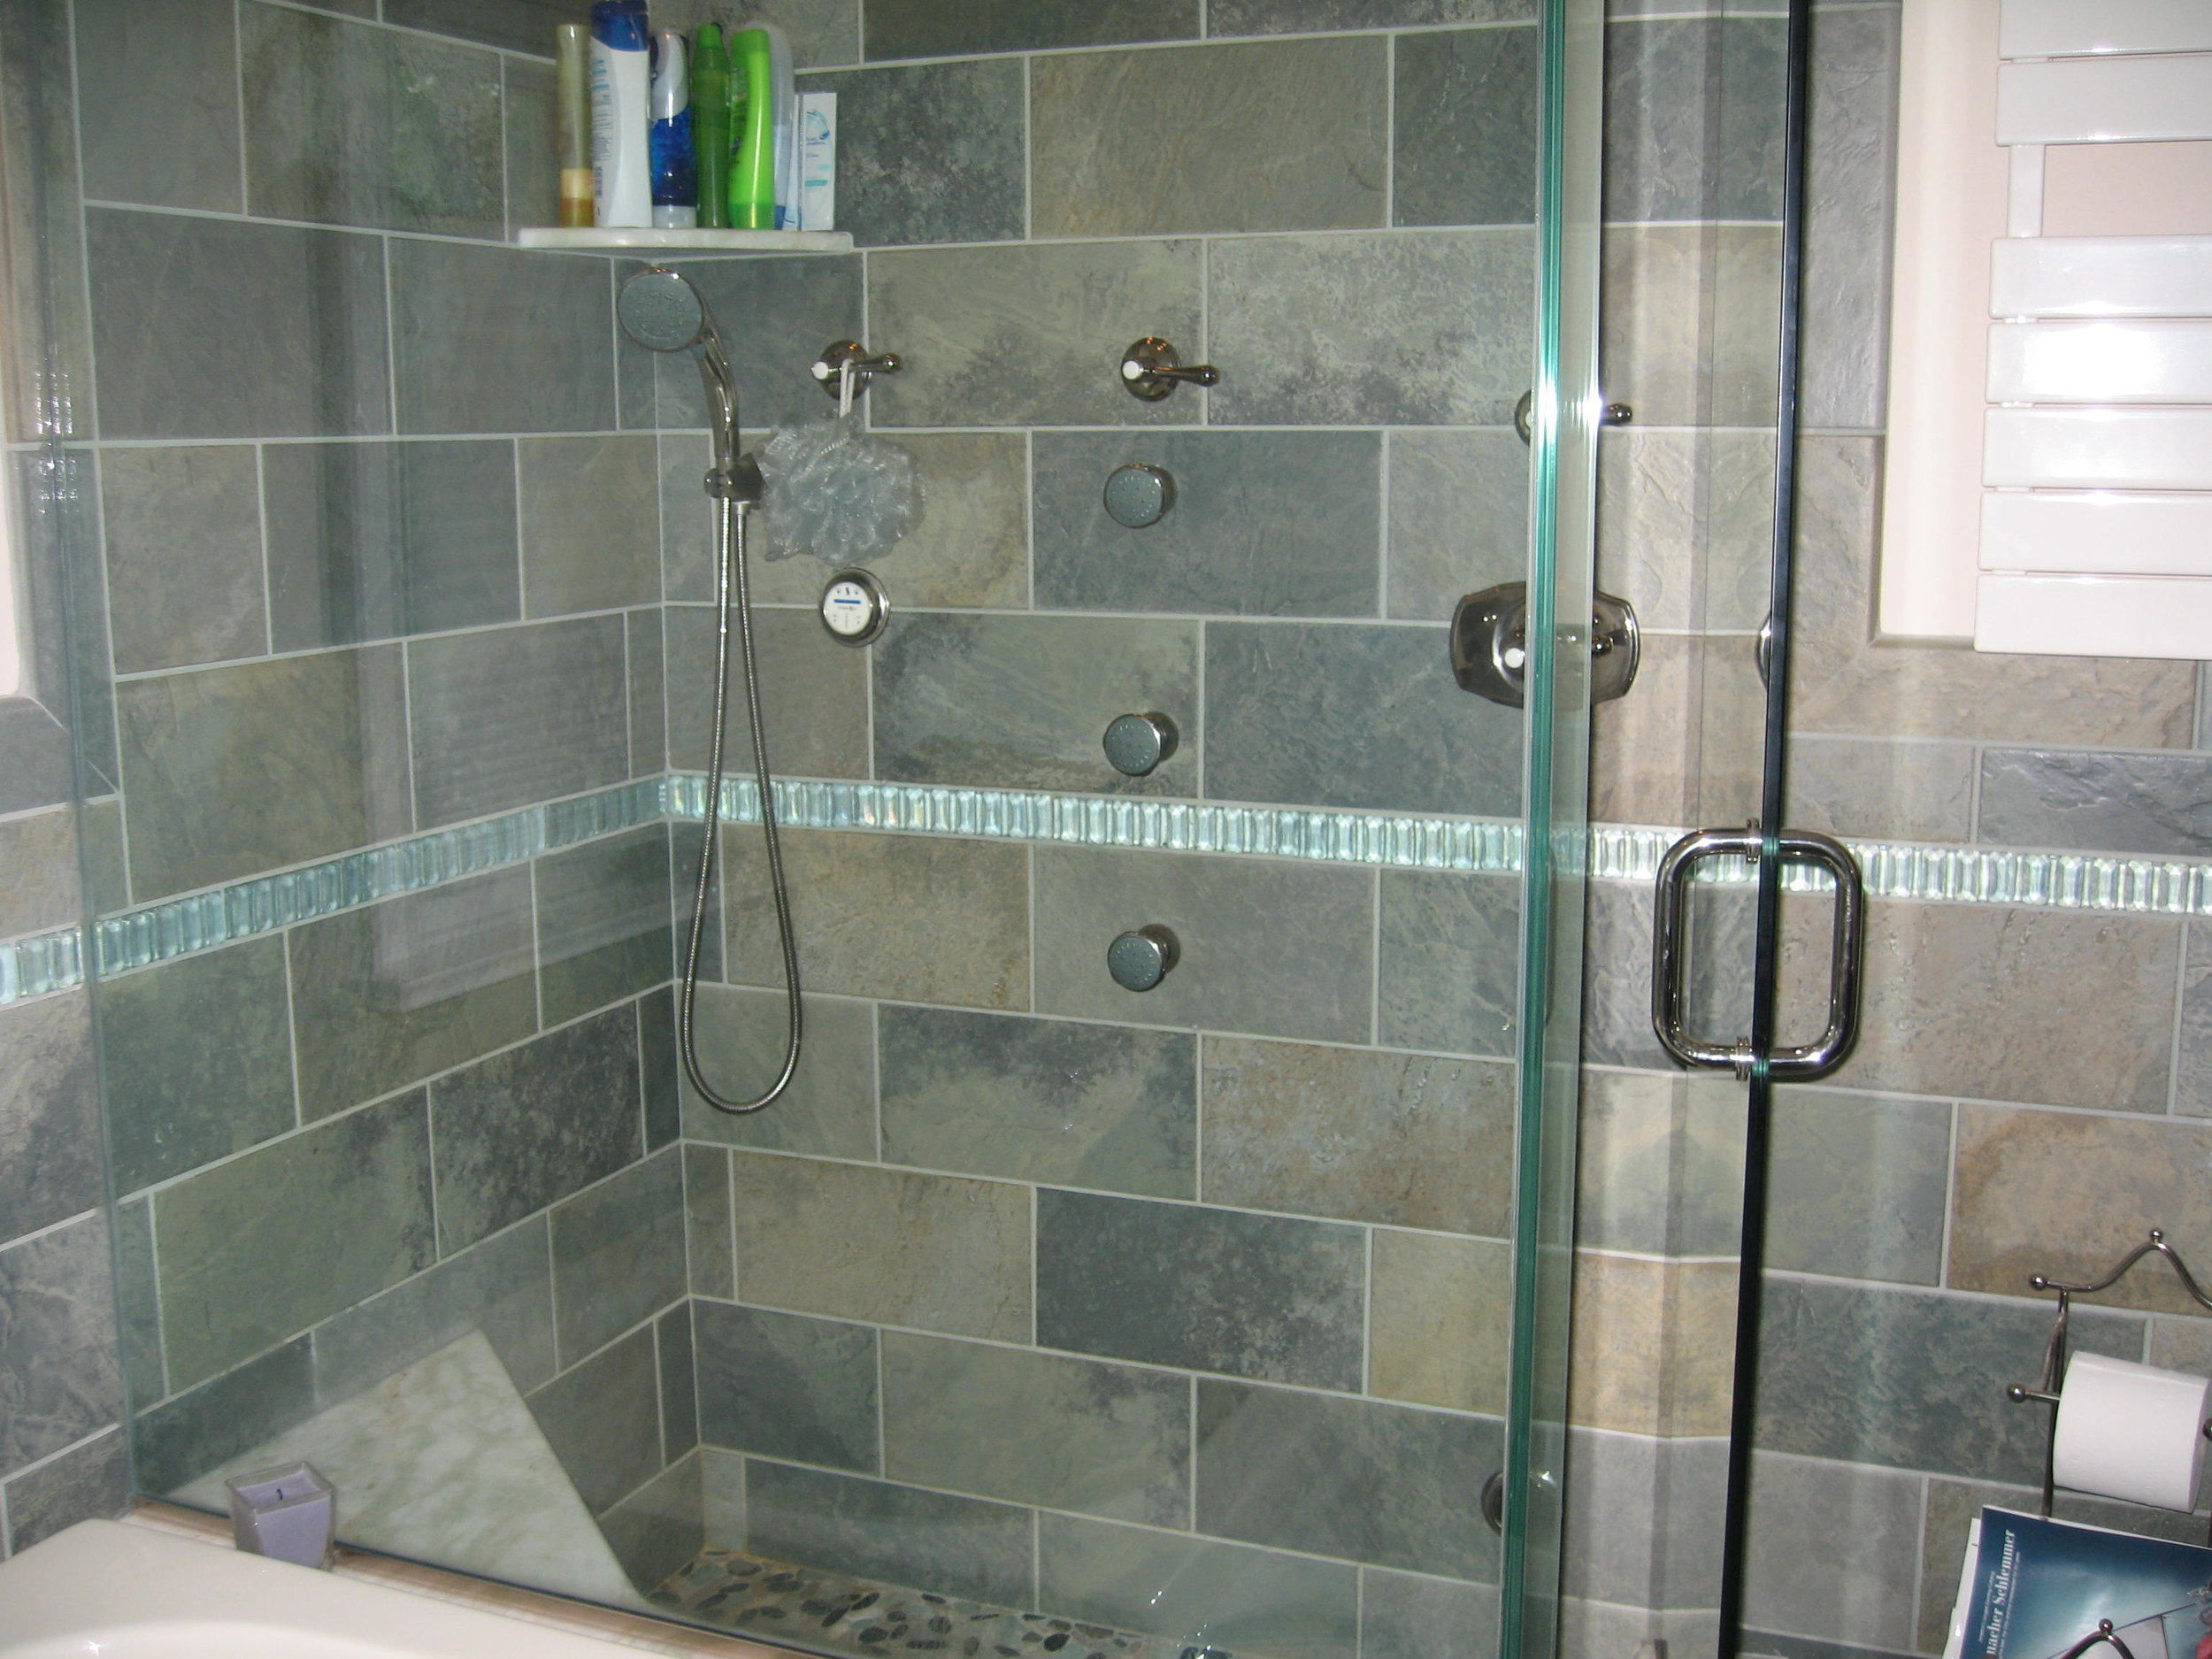 Tile Work and Granite - You pick the materials and we will coordinate  the installation.